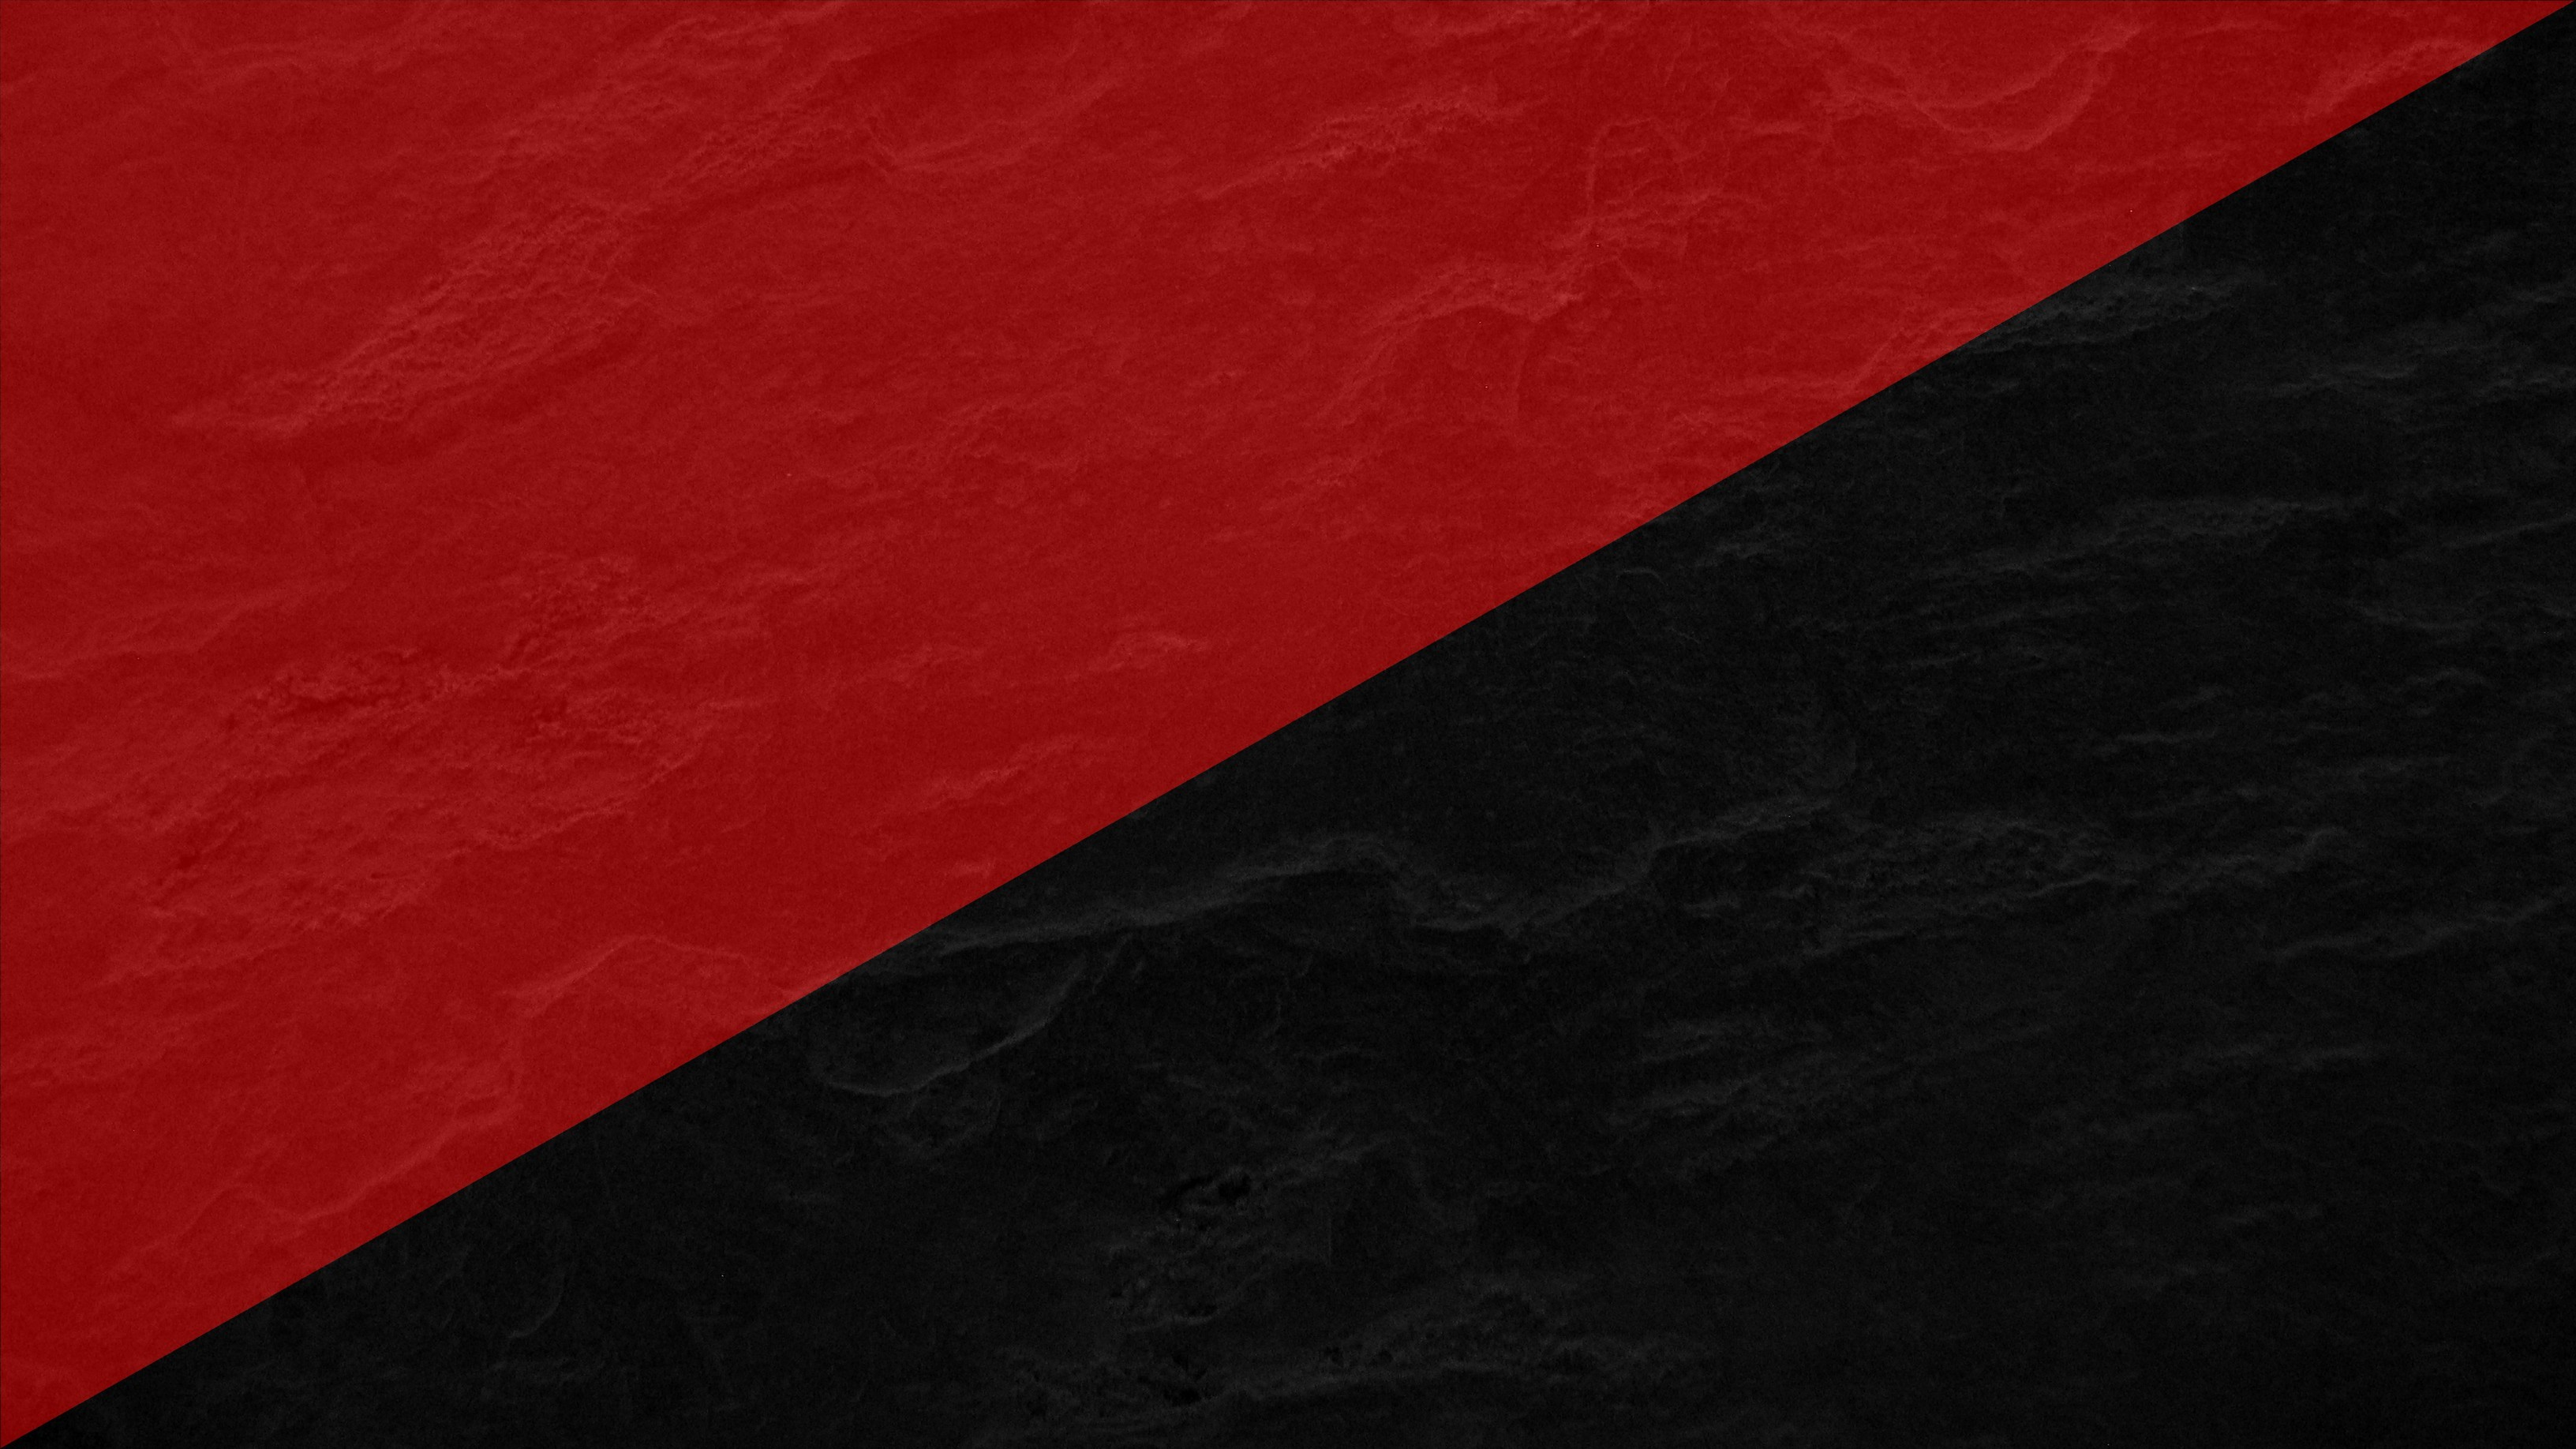 3264x1836 Radical anarchism anarchy communism flags wallpaper